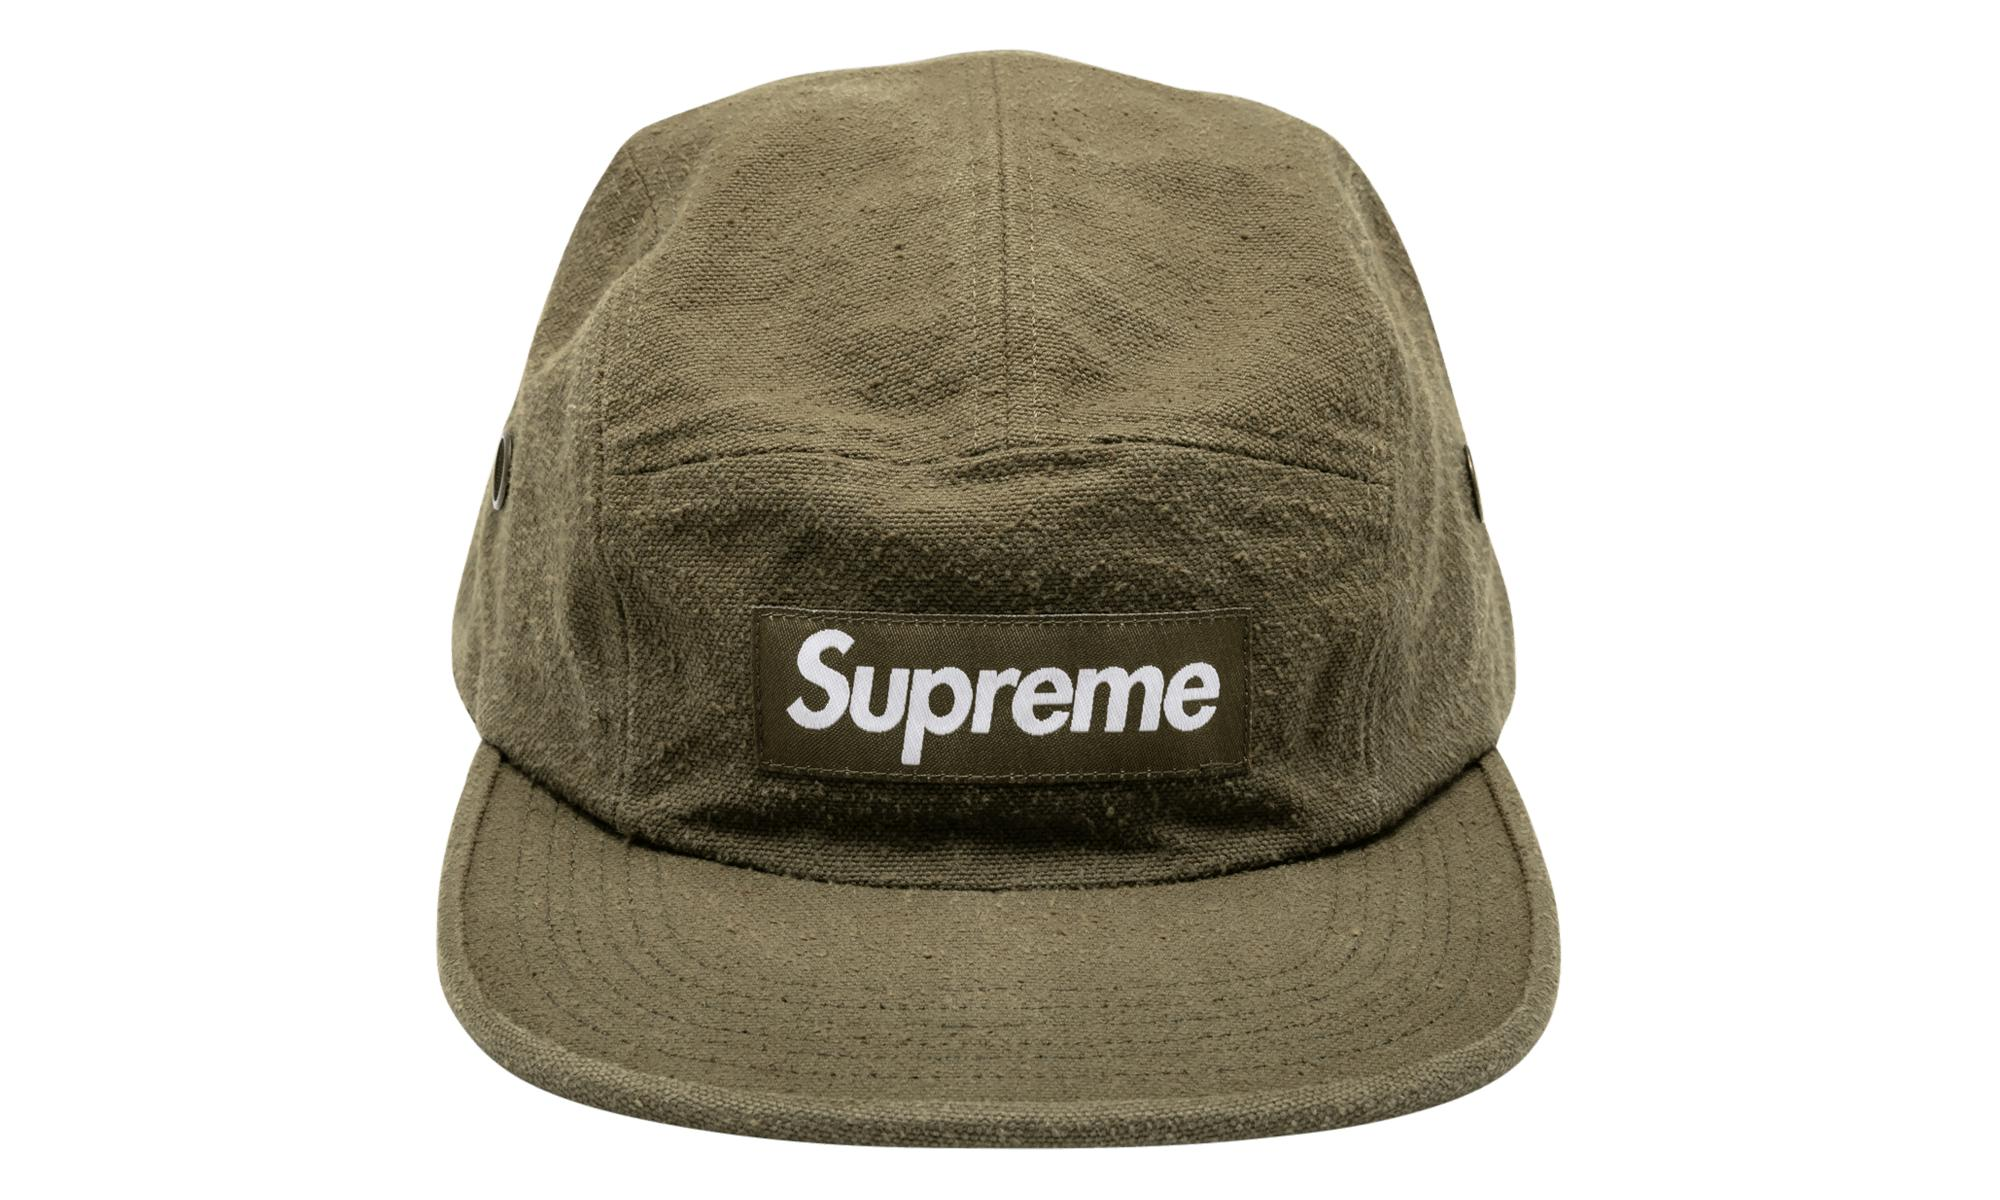 b2cc039a43f Lyst - Supreme Napped Canvas Camp Cap in Green for Men - Save 11%